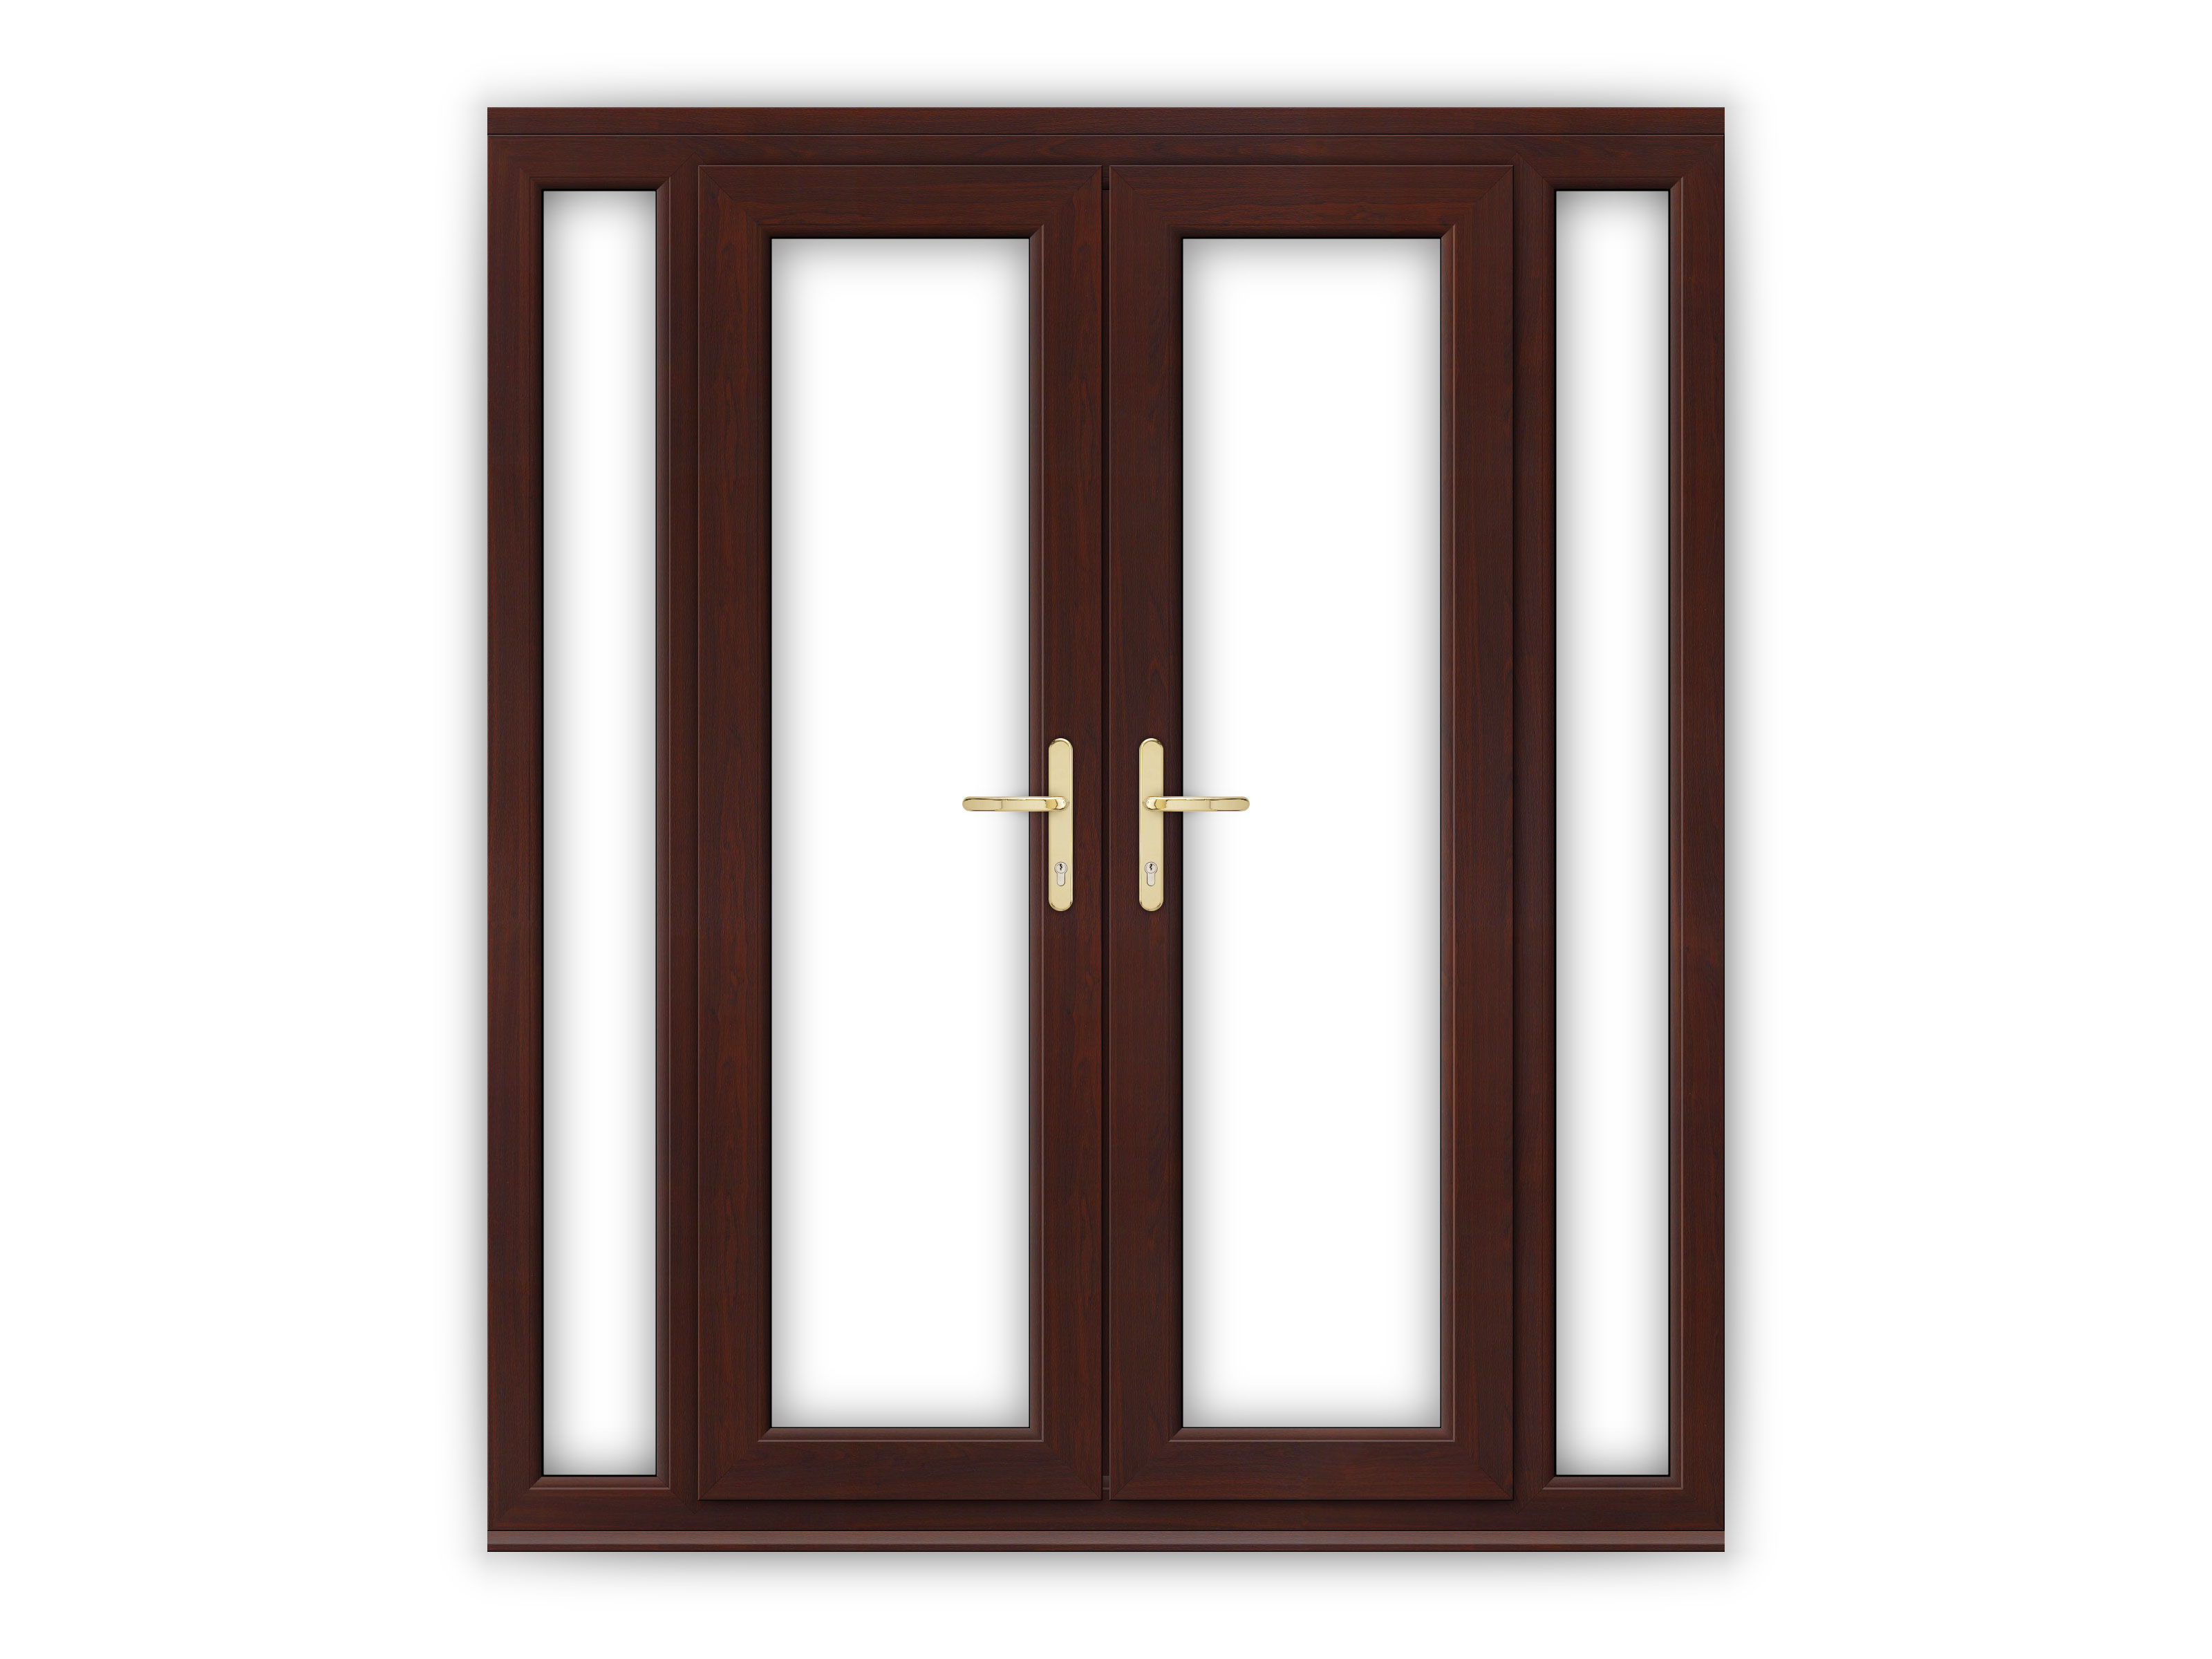 4ft rosewood upvc french doors with narrow side panels for Upvc french doors 1790 x 2090mm